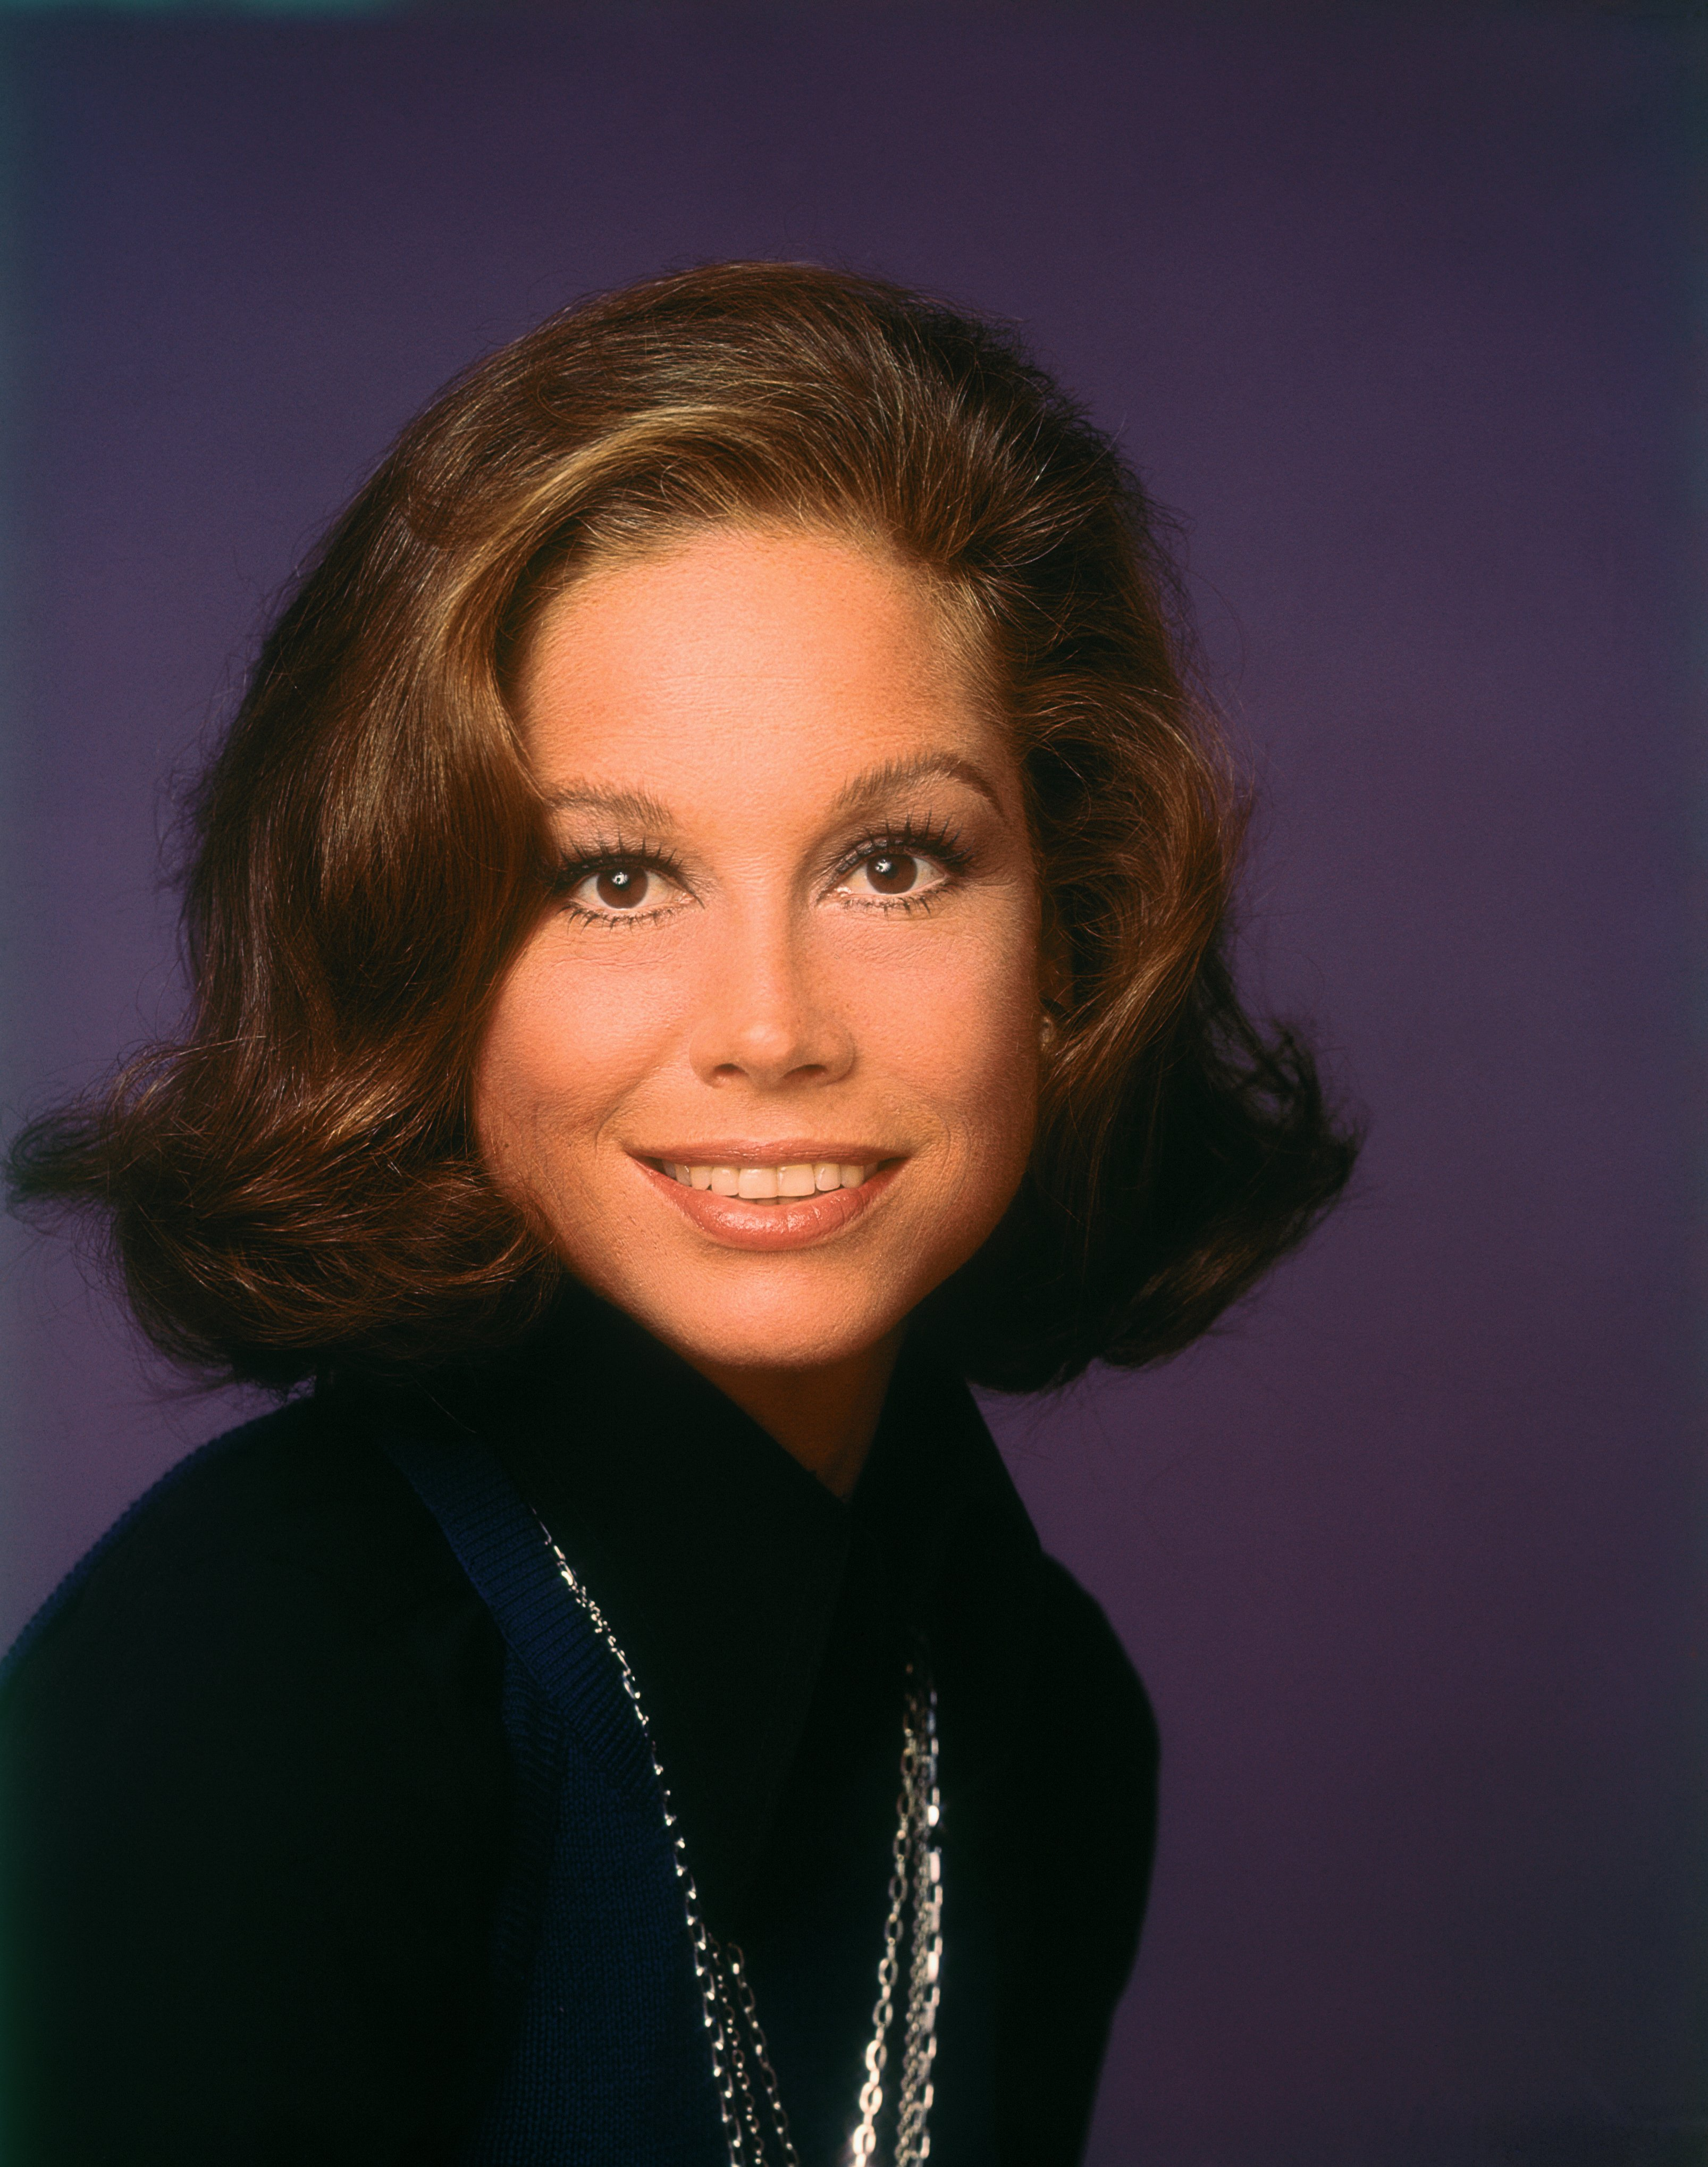 Close-up of smiling actress Mary Tyler Moore who stars in the television series The Mary Tyler Moore Show, circa 1975. | Source: Getty Images